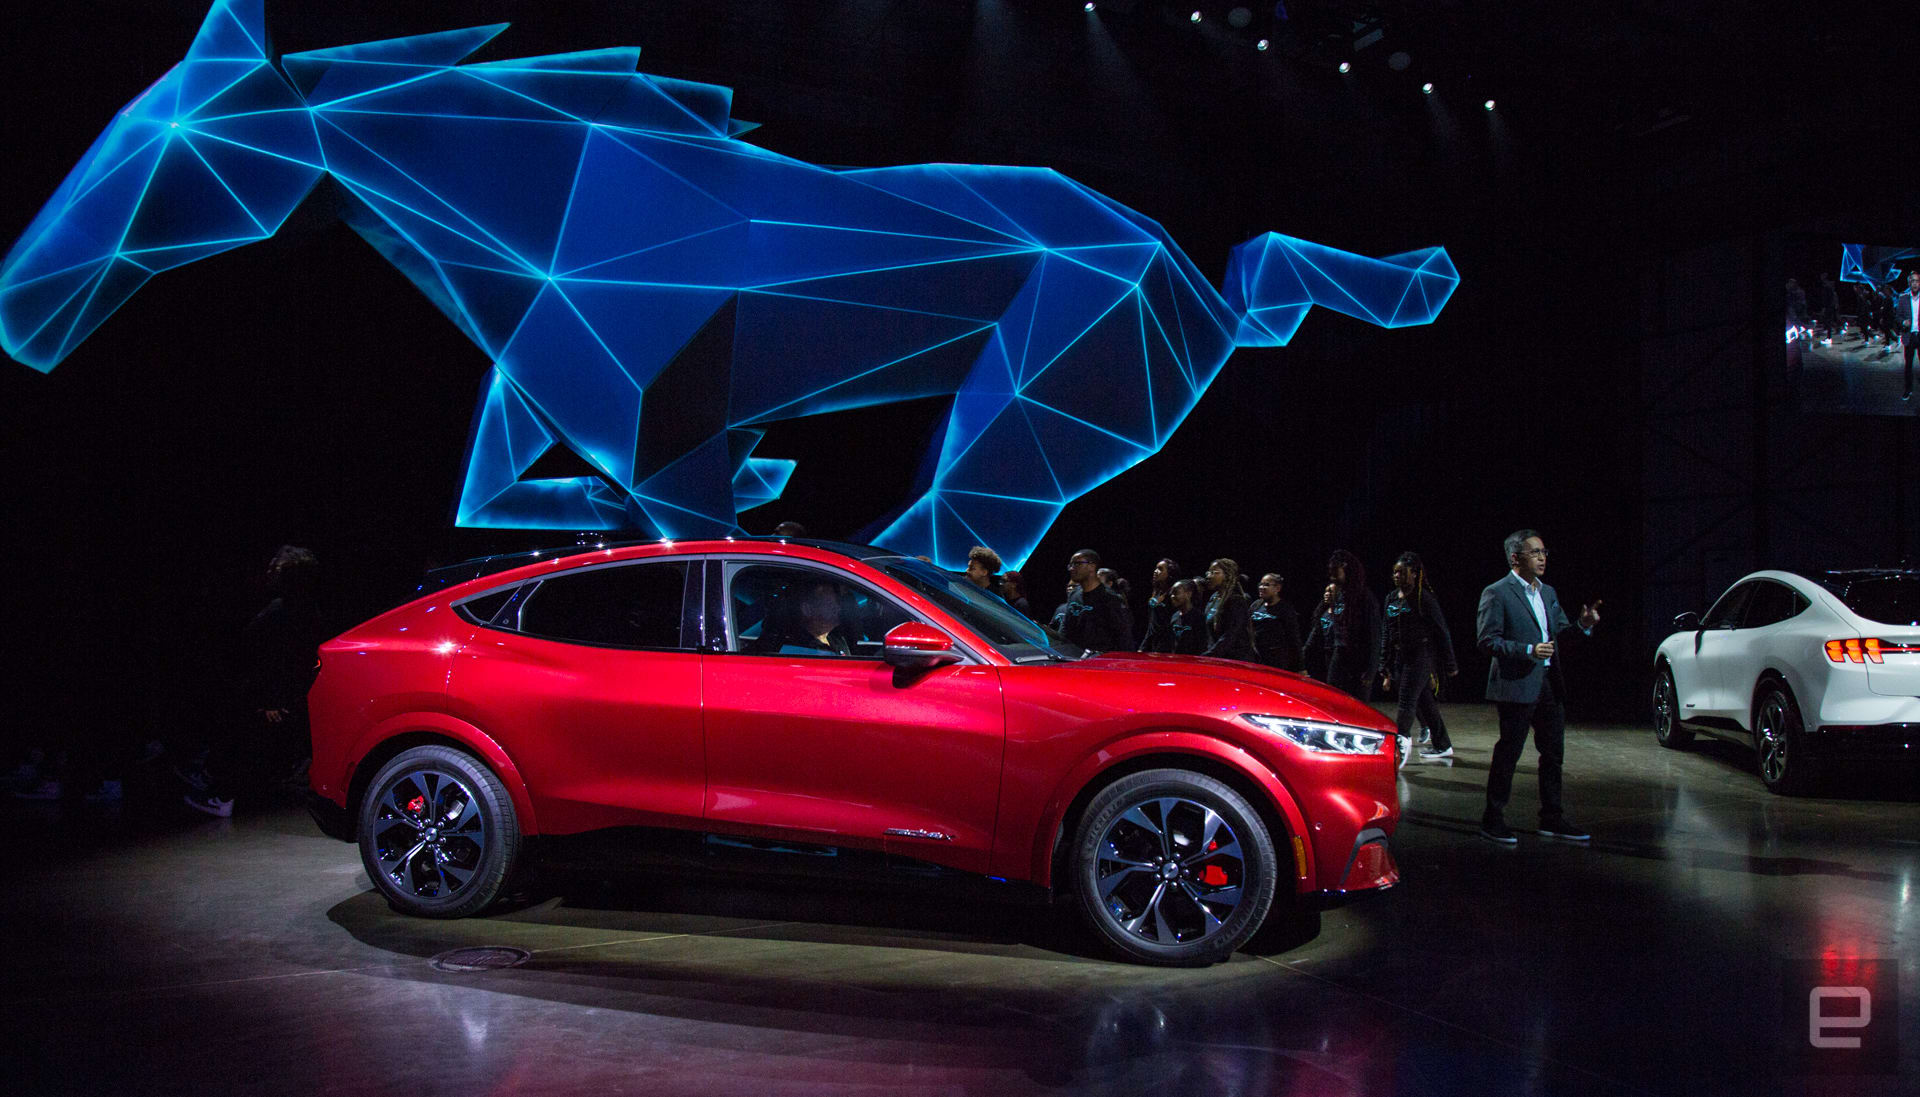 Ford Mustang Mach-E unveil